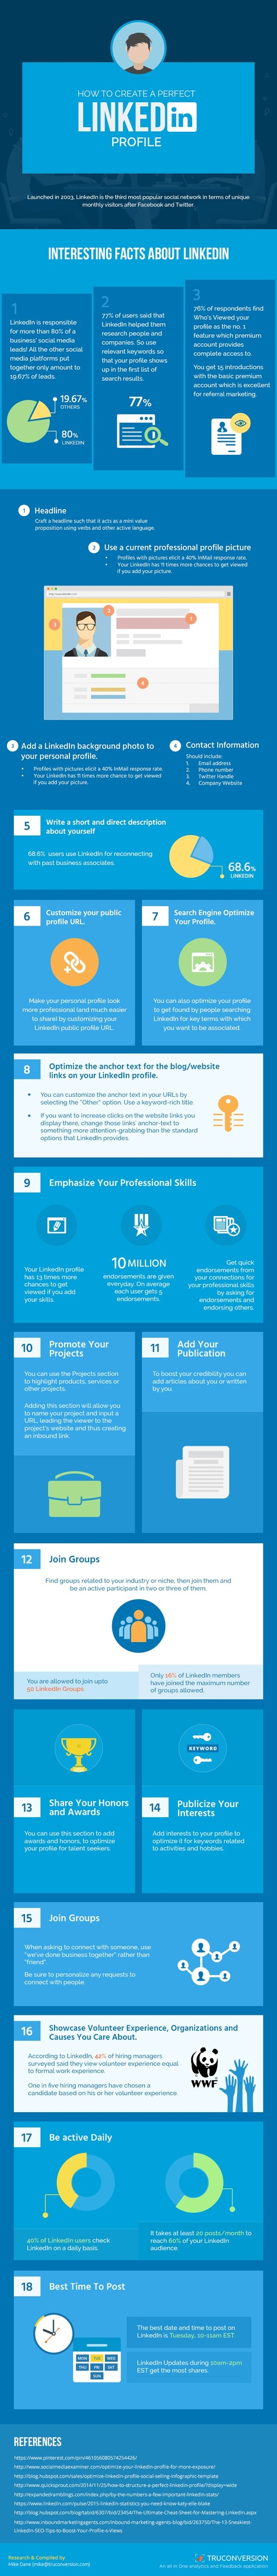 Perfect LinkedIn Profile Infographic | e-commerce & social media | Scoop.it